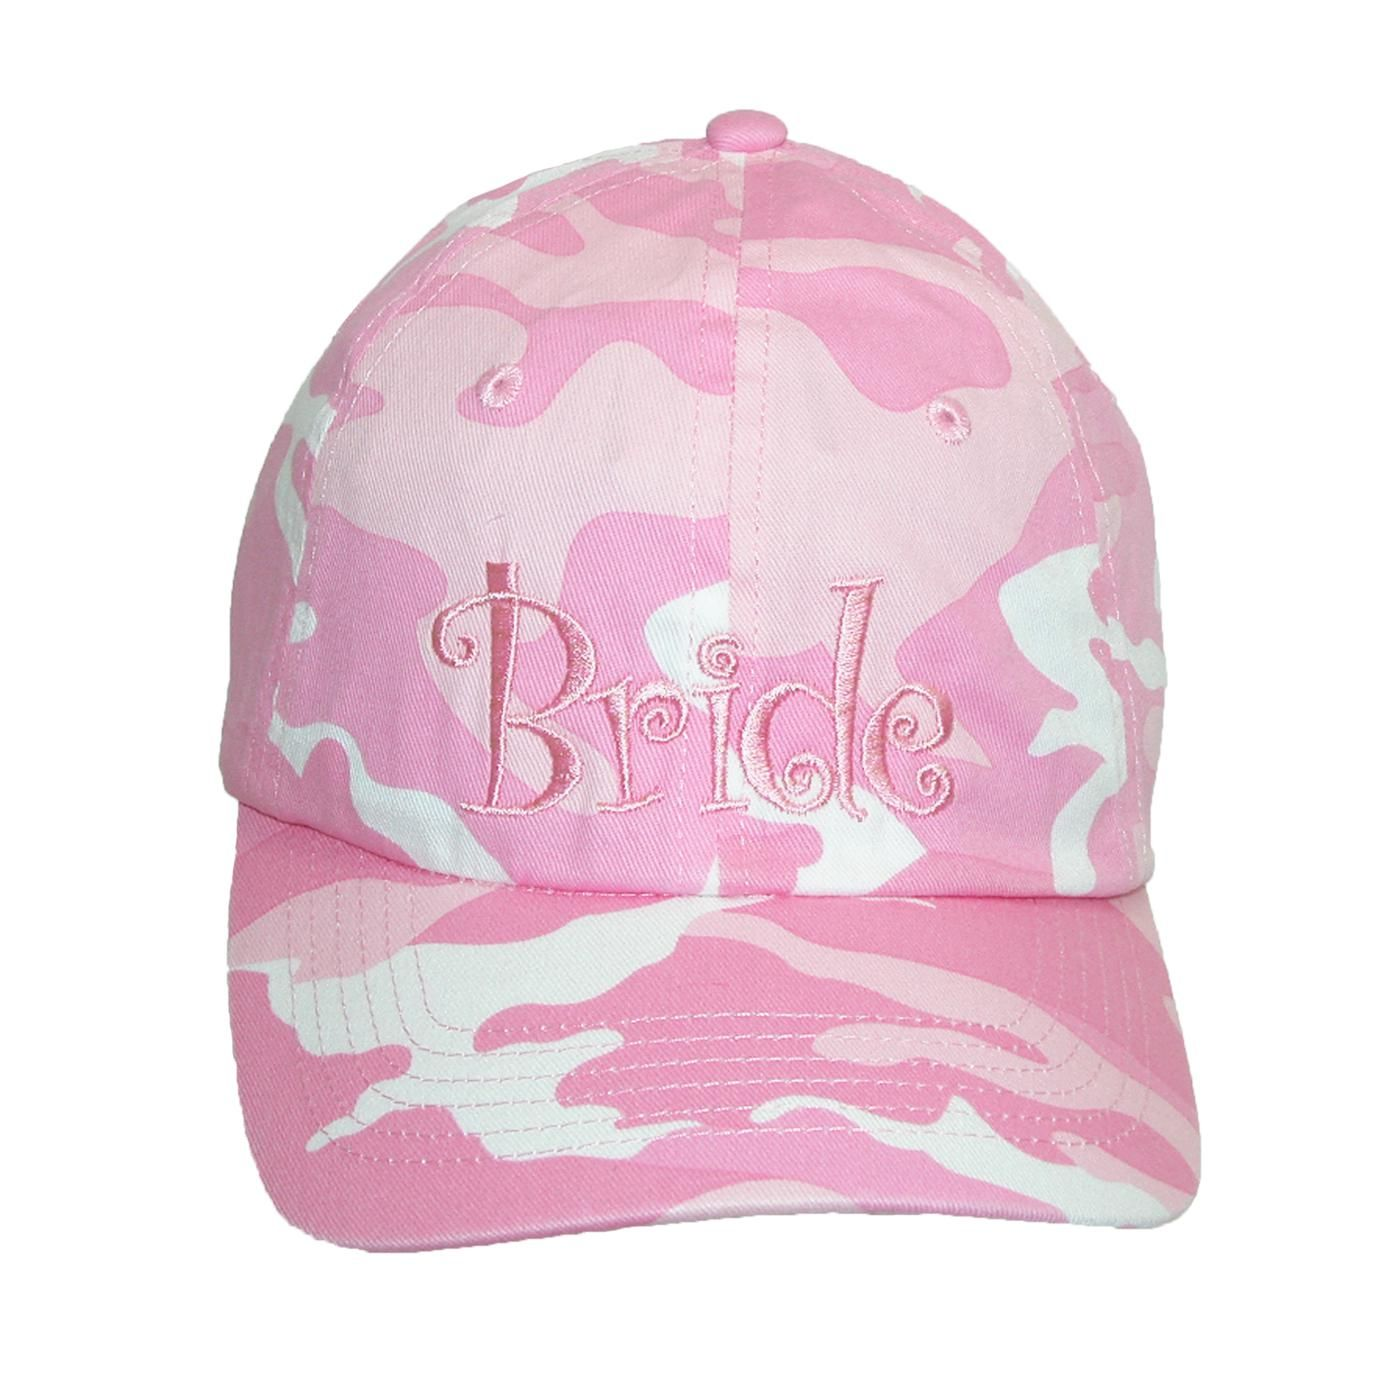 Pink camouflage pattern with embroidered \